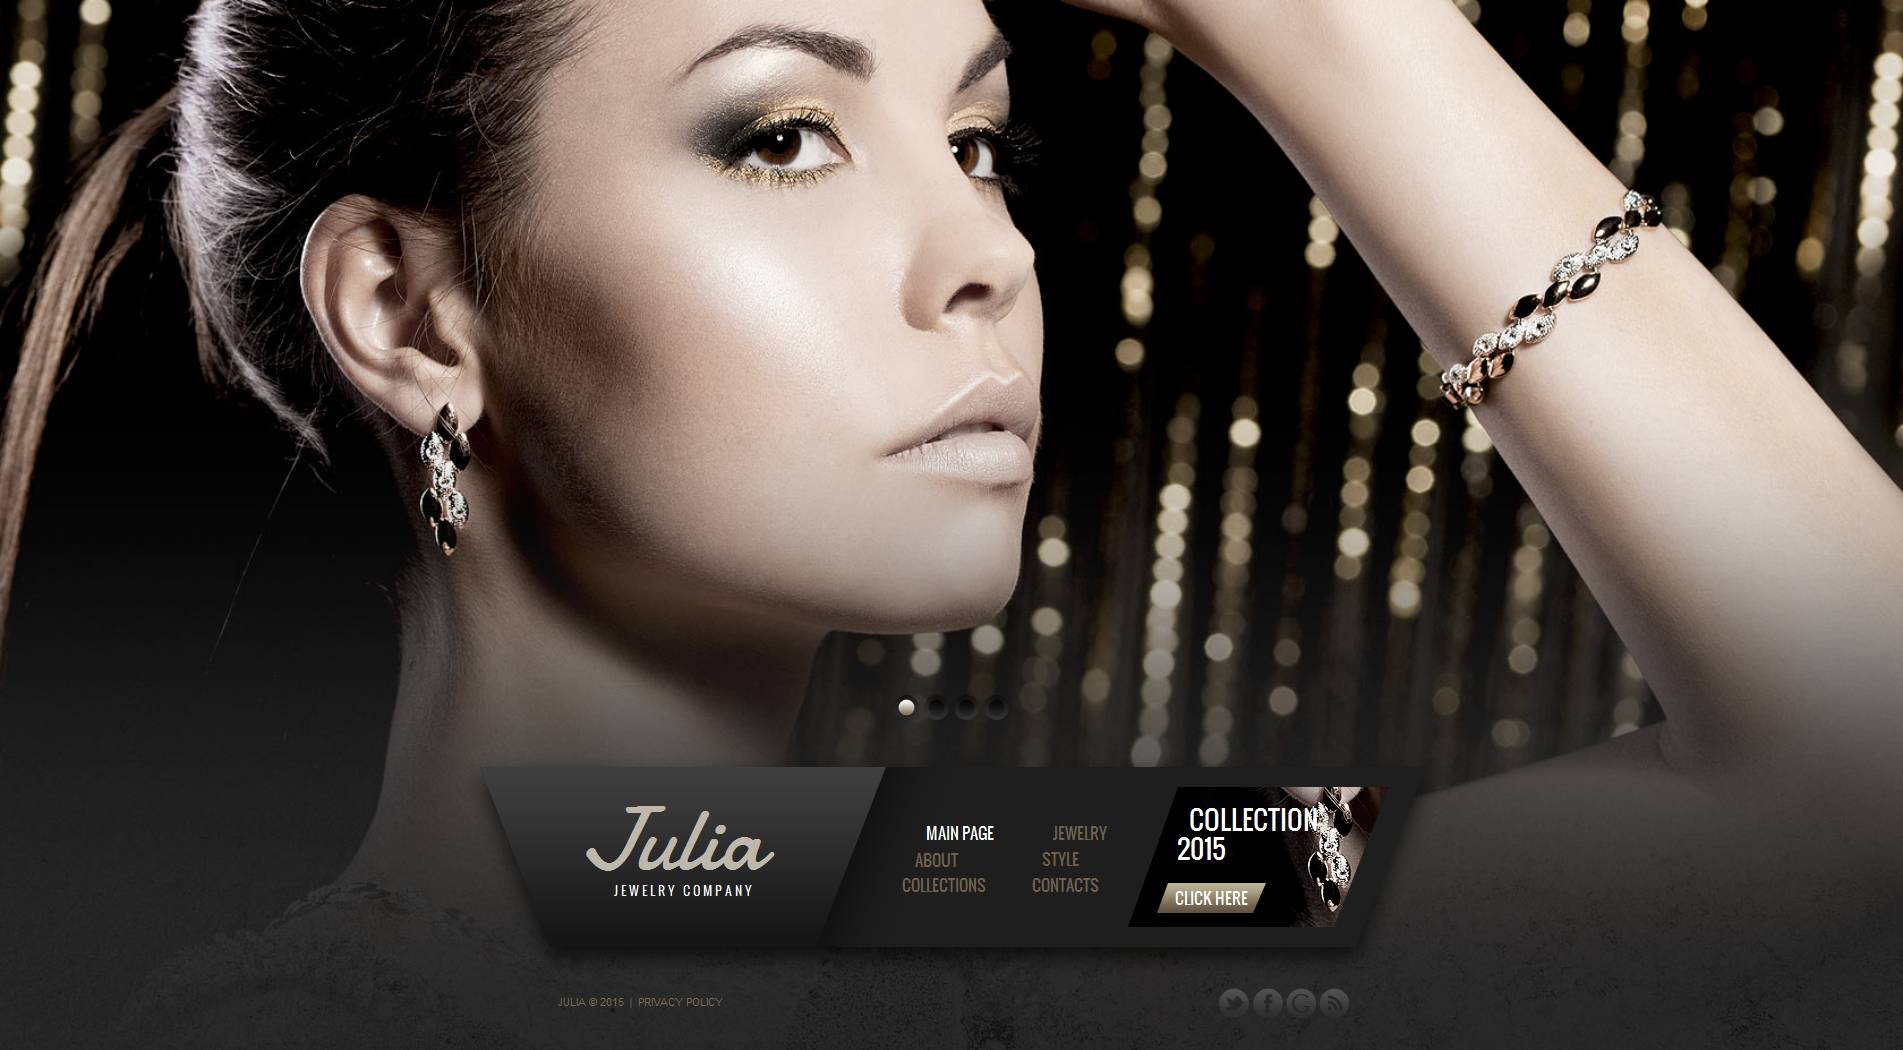 The Julia Jewelry Company Moto CMS HTML Design 53622, one of the best Moto CMS HTML templates of its kind (jewelry, most popular), also known as Julia jewelry company Moto CMS HTML template, brand Moto CMS HTML template, collections online store Moto CMS HTML template, jewels Moto CMS HTML template, gold Moto CMS HTML template, silver Moto CMS HTML template, golden ring Moto CMS HTML template, rings Moto CMS HTML template, watch Moto CMS HTML template, watches store Moto CMS HTML template, souvenir Moto CMS HTML template, present and related with Julia jewelry company, brand, collections online store, jewels, gold, silver, golden ring, rings, watch, watches store, souvenir, present, etc.